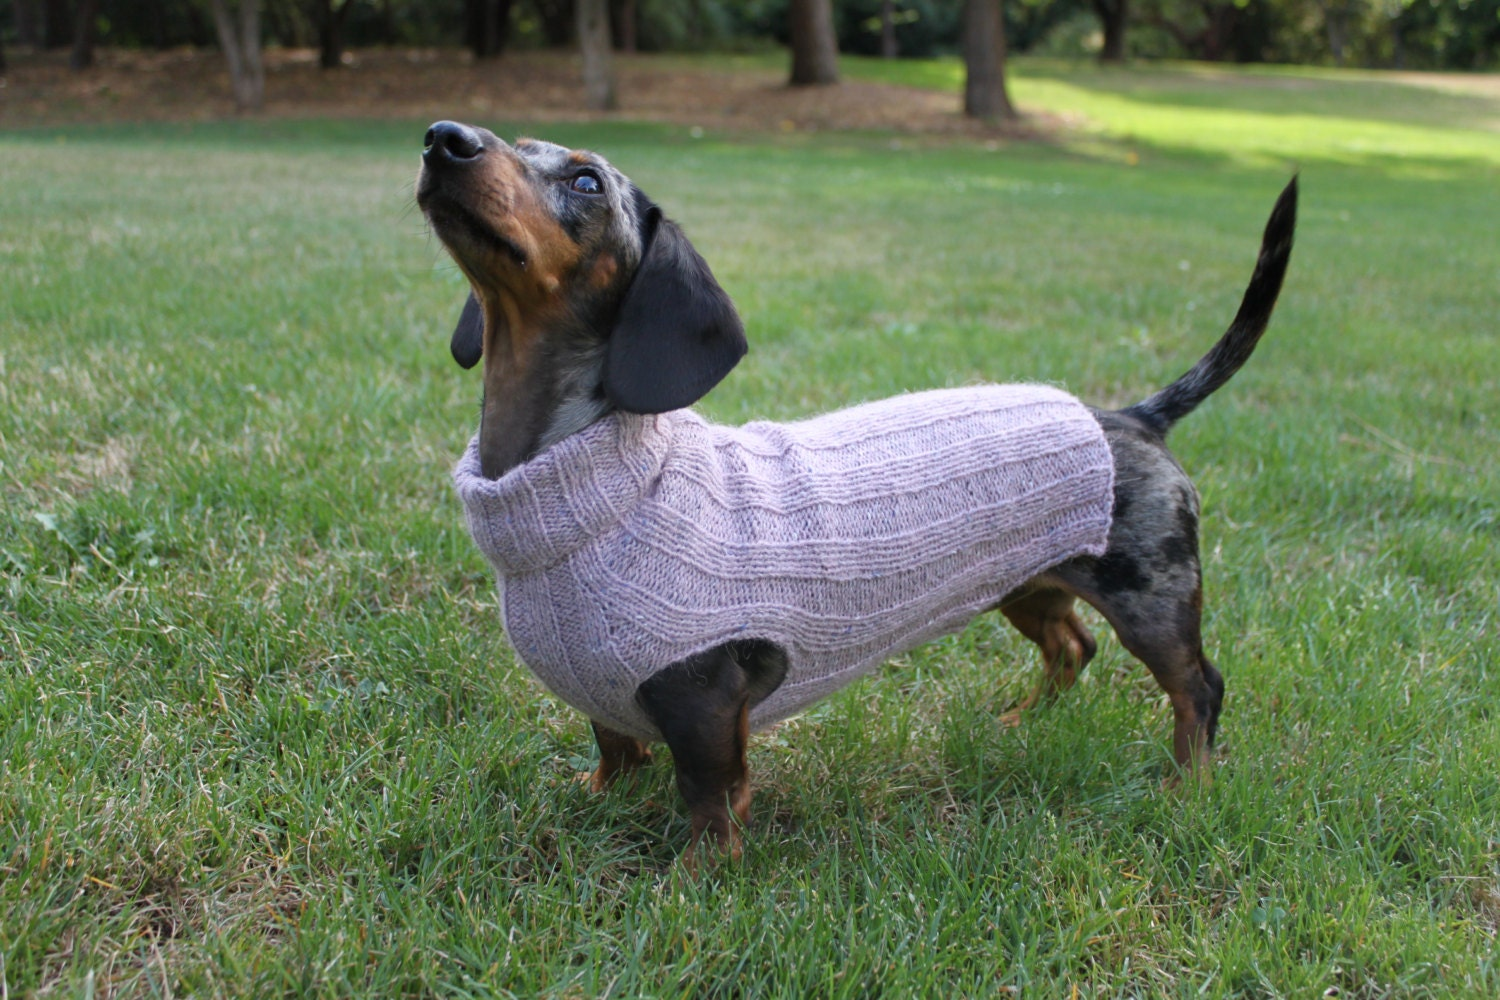 Knitting Patterns For Dachshund Dog Sweaters : Knitting Pattern Top-Down Mini Dachshund Dog Sweater